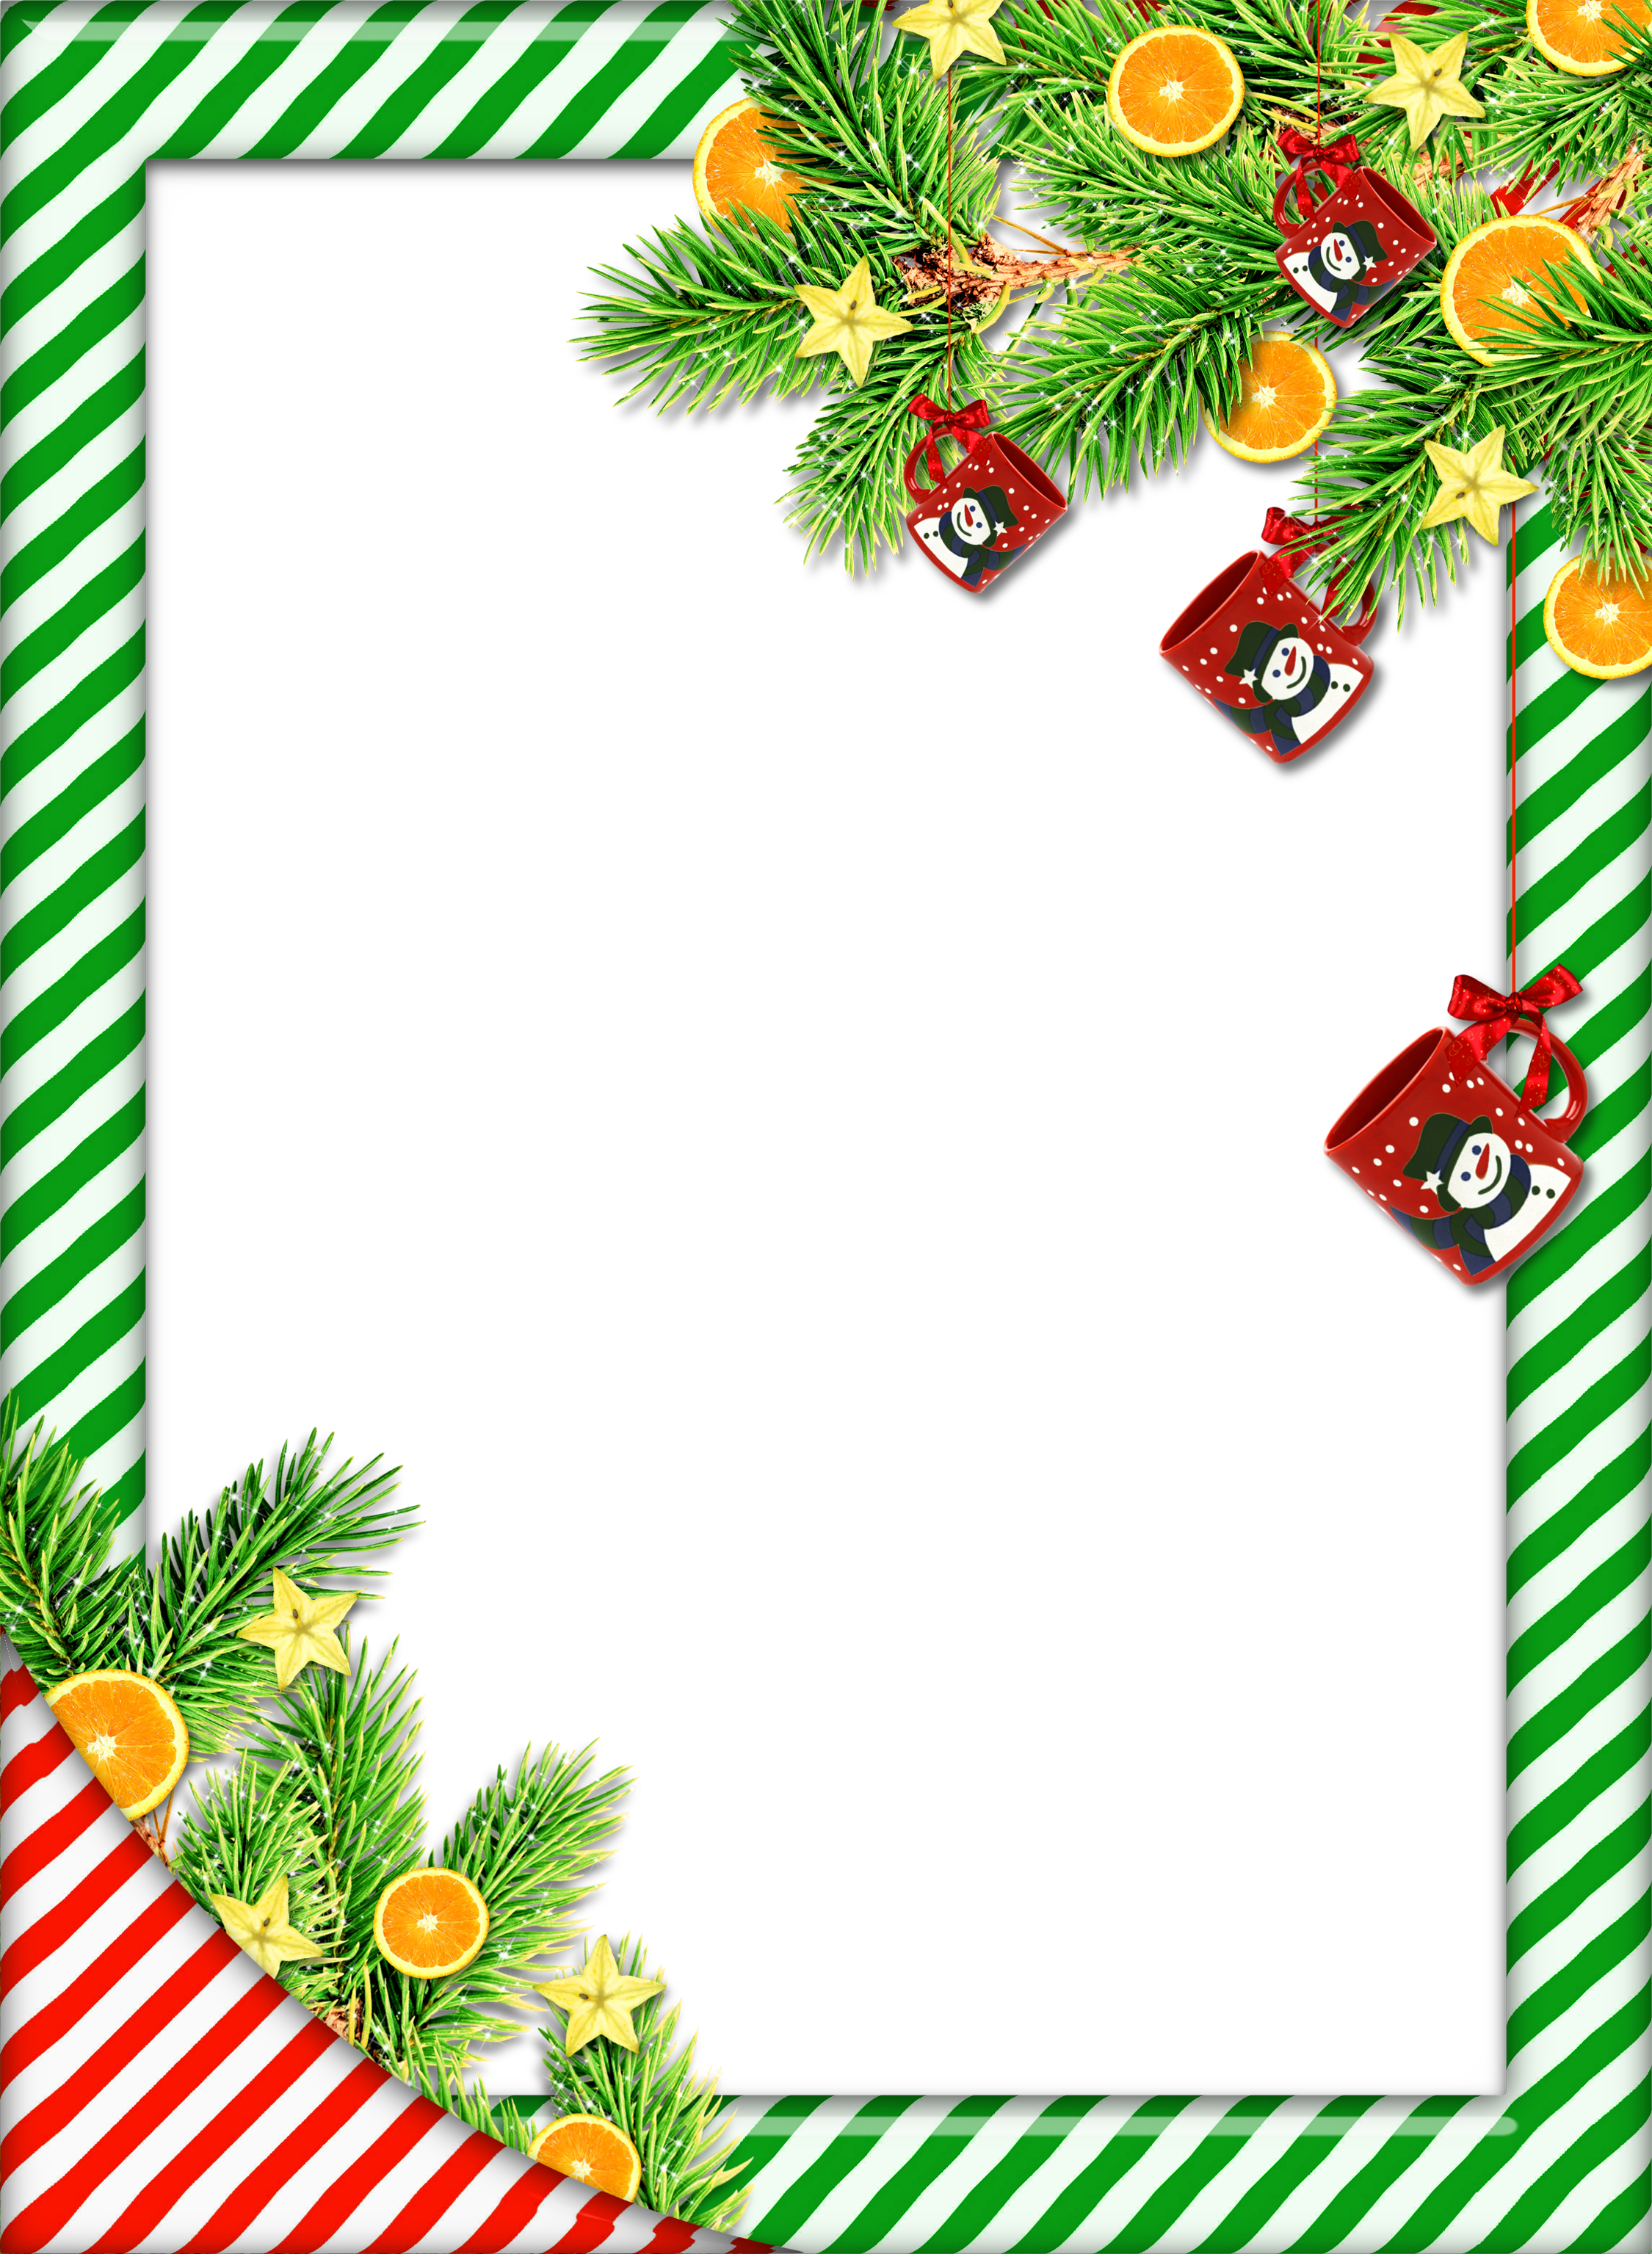 Frame clipart holiday. Christmas mint png photo